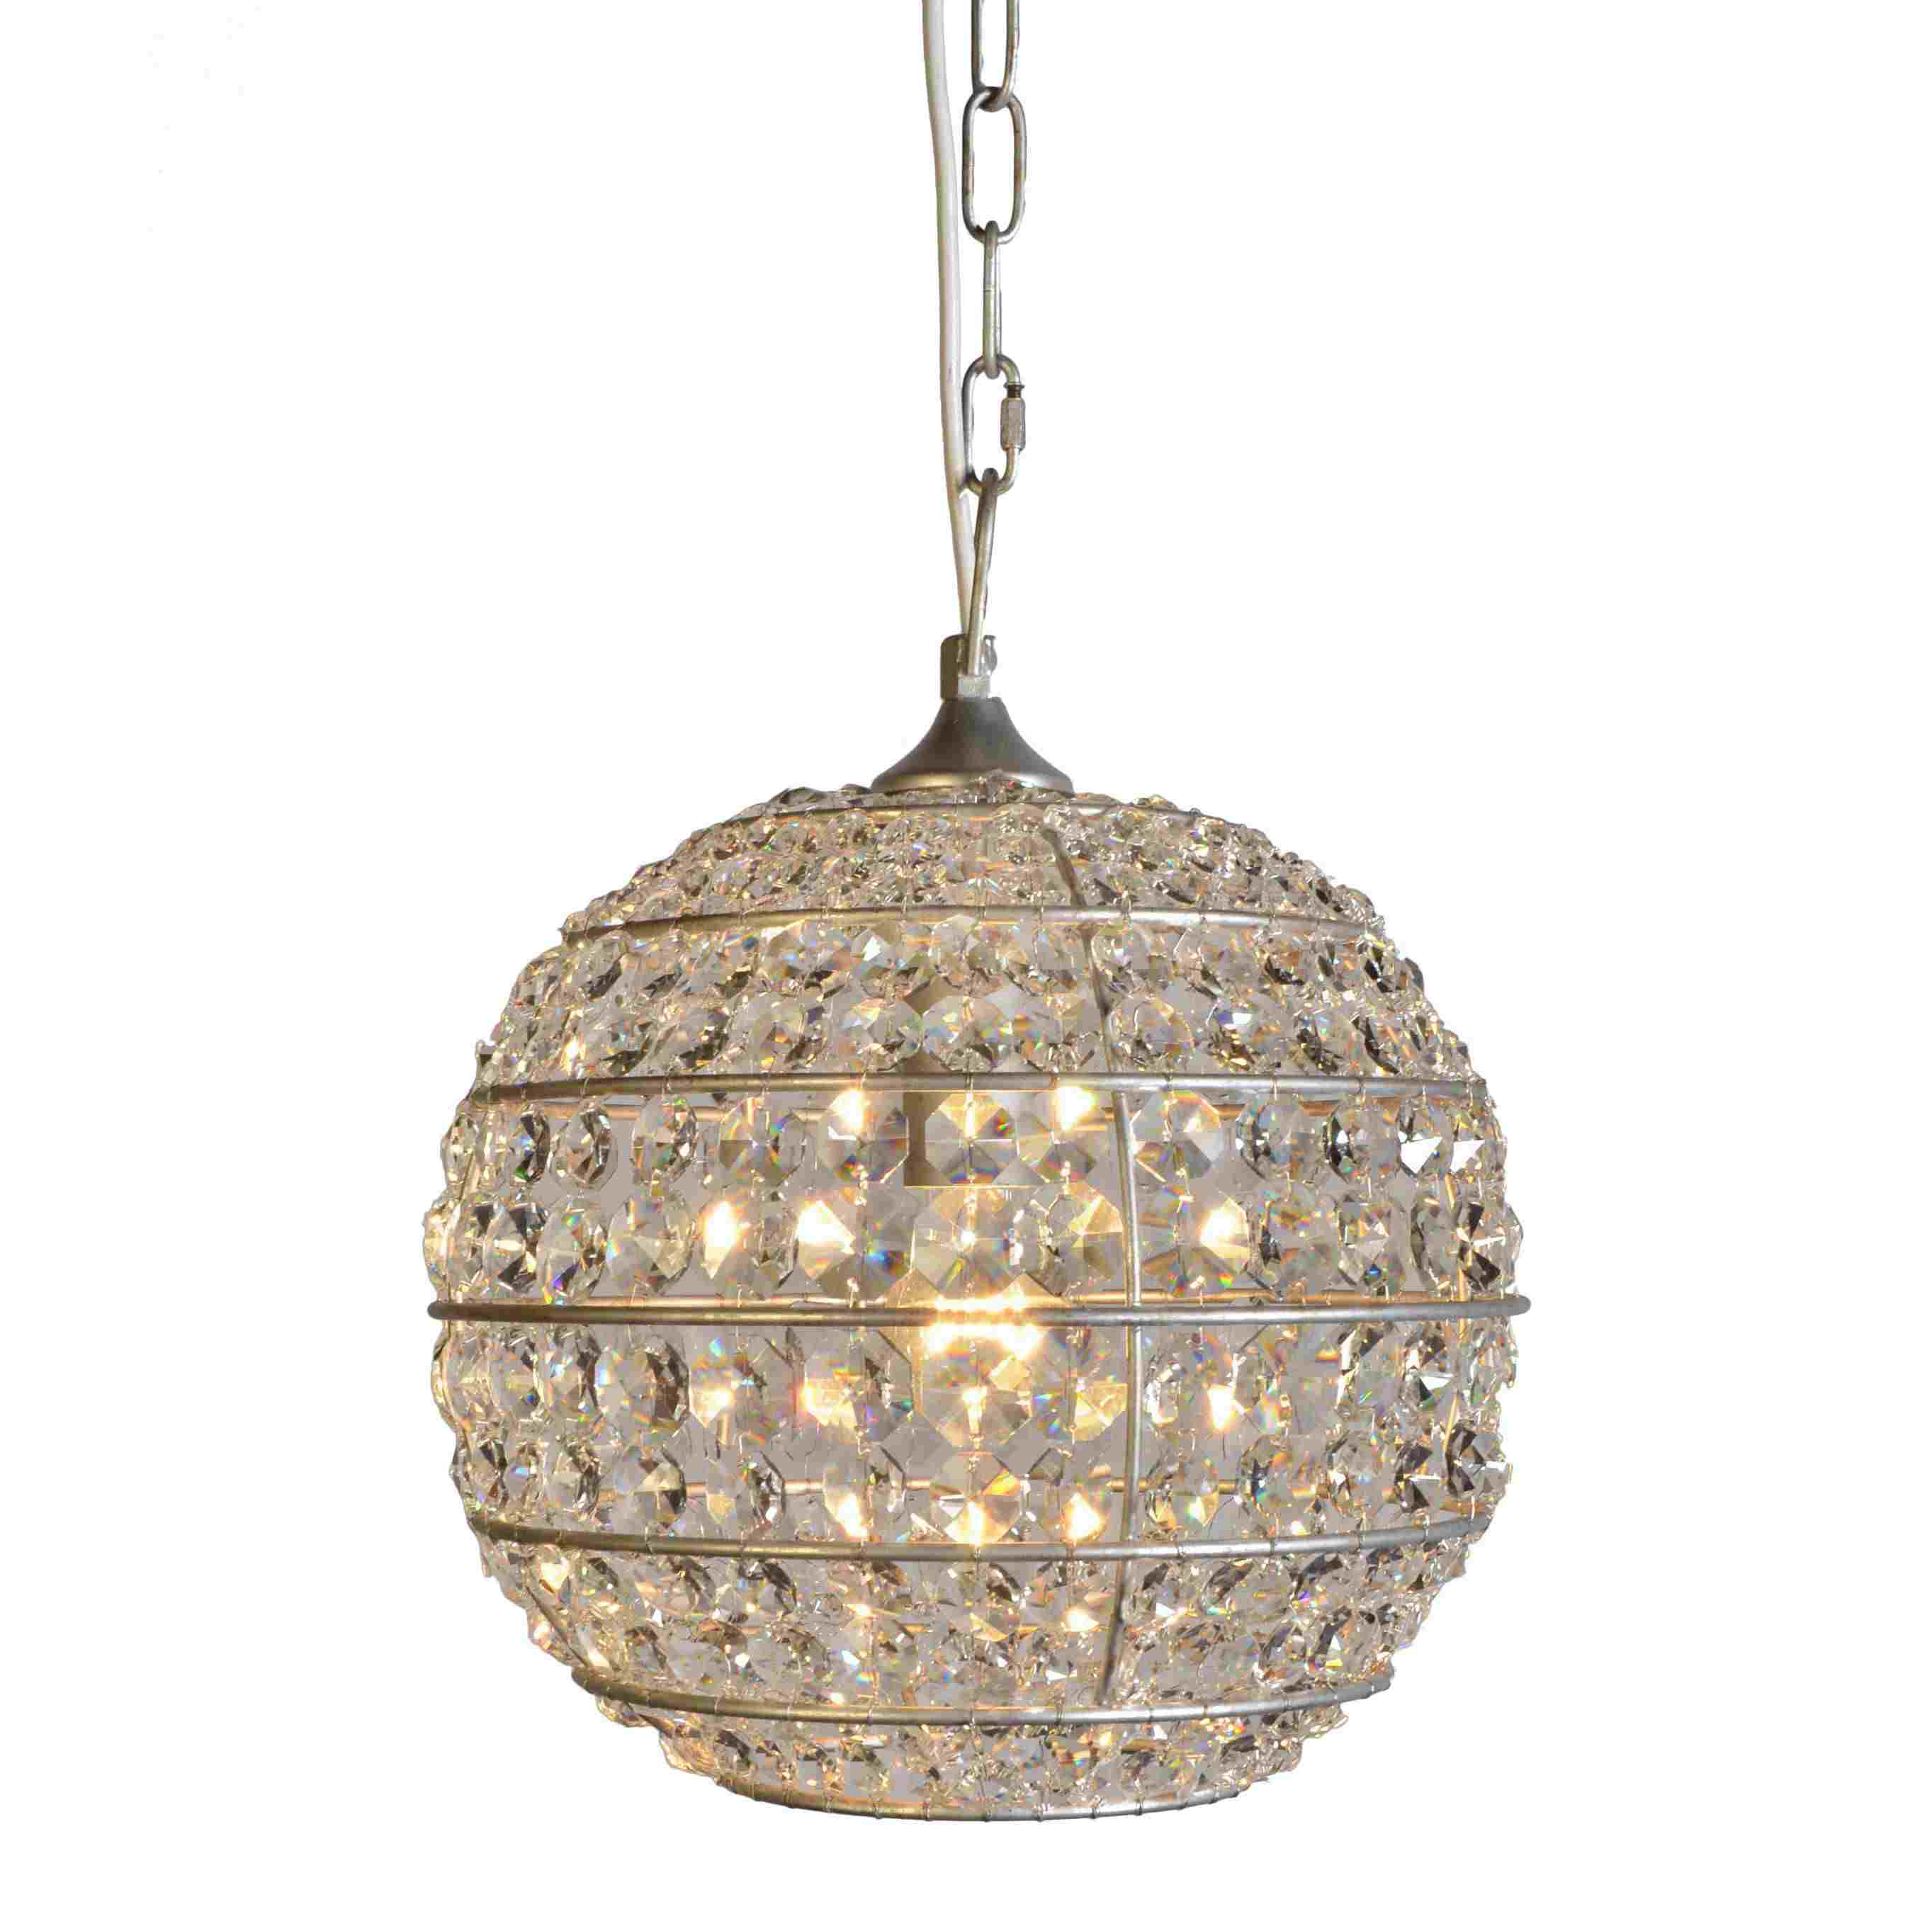 bohemian chandeliers swarovski table chandelier ball chaise leather living folding light room couch with crystal imitation coffee fixture